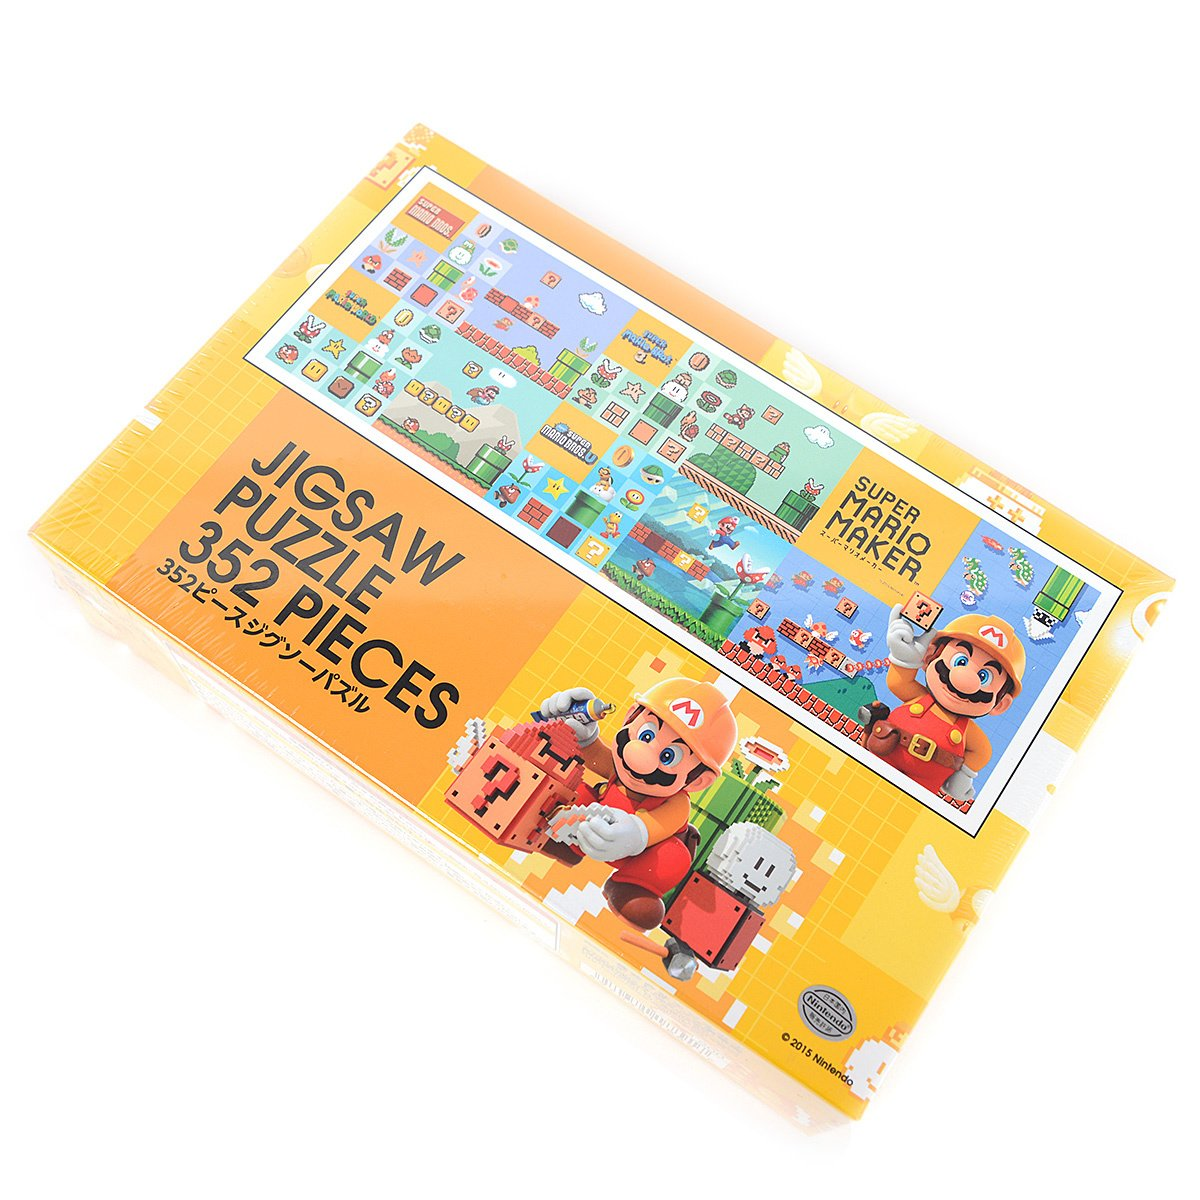 Excellent Jigsaw Puzzle Epic Thin Thomas Kinkade Puzzles Shaped Wheel Of Fortune Bonus Puzzle Wooden Block Puzzle Free Youthful Word Search Puzzles YellowWord Search Puzzles Online Super Mario Maker History Jigsaw Puzzle   Tokyo Otaku Mode Shop